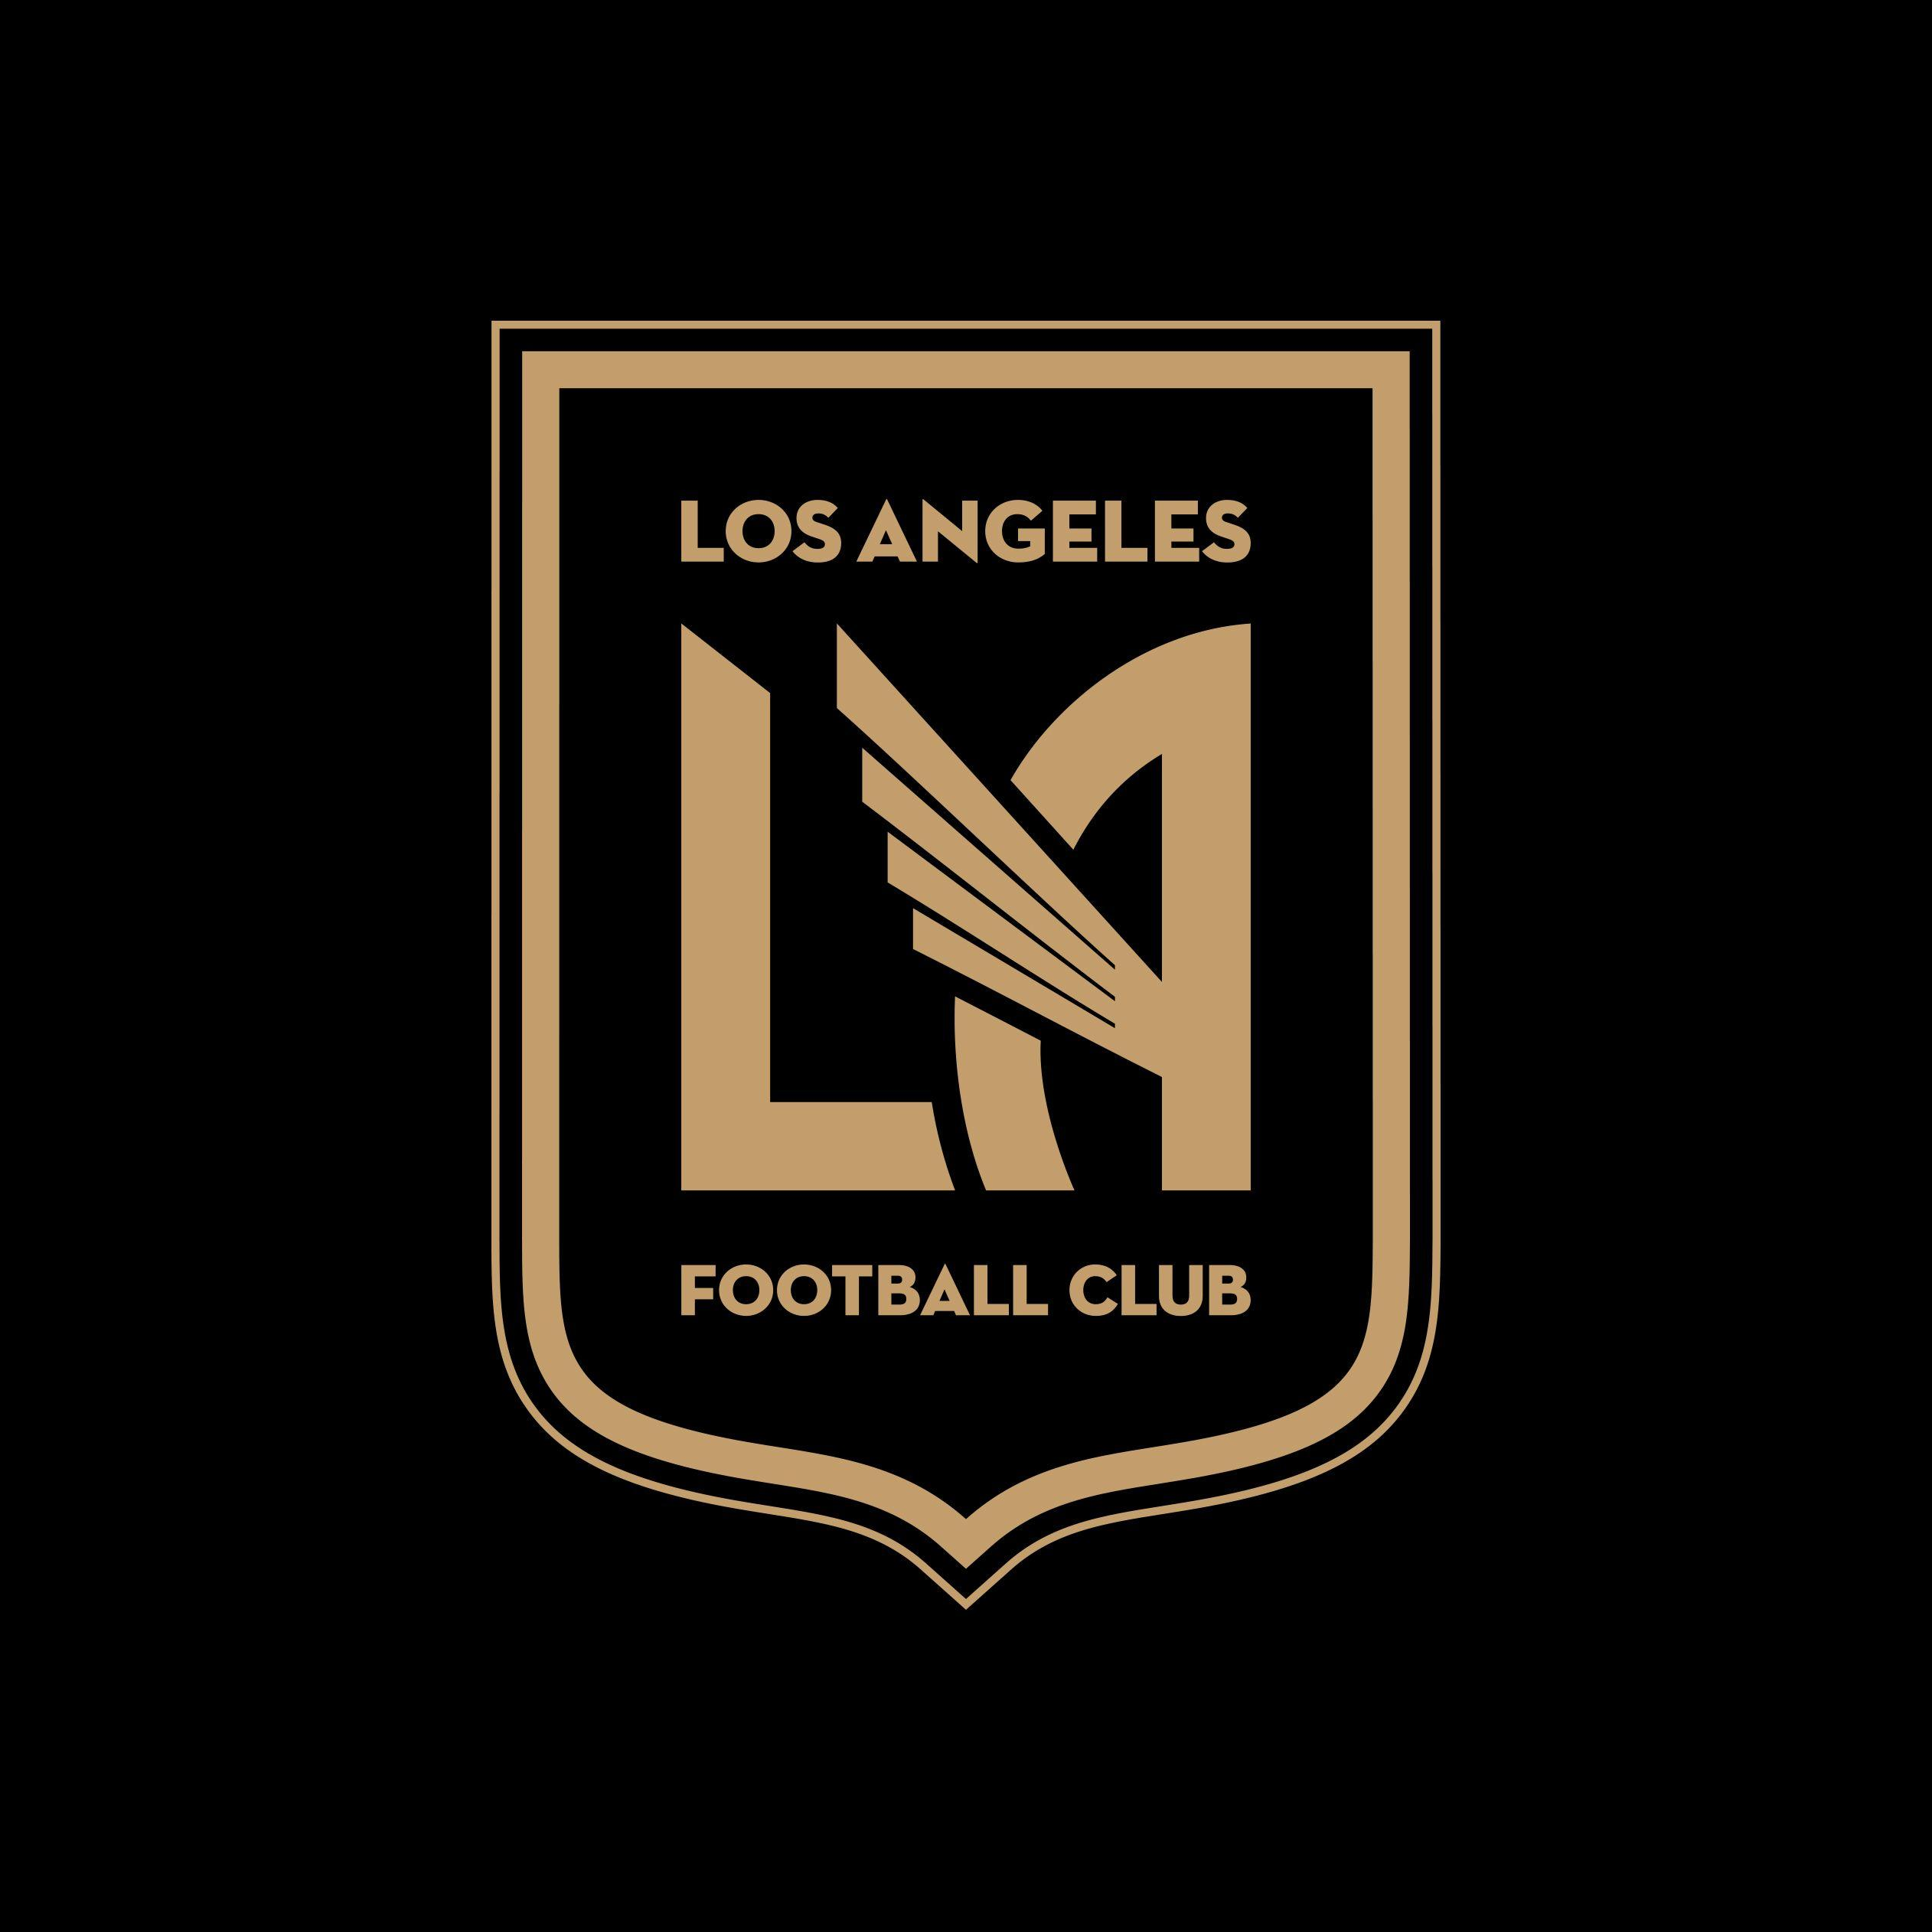 Downloads And Wallpapers | Los Angeles Football Club